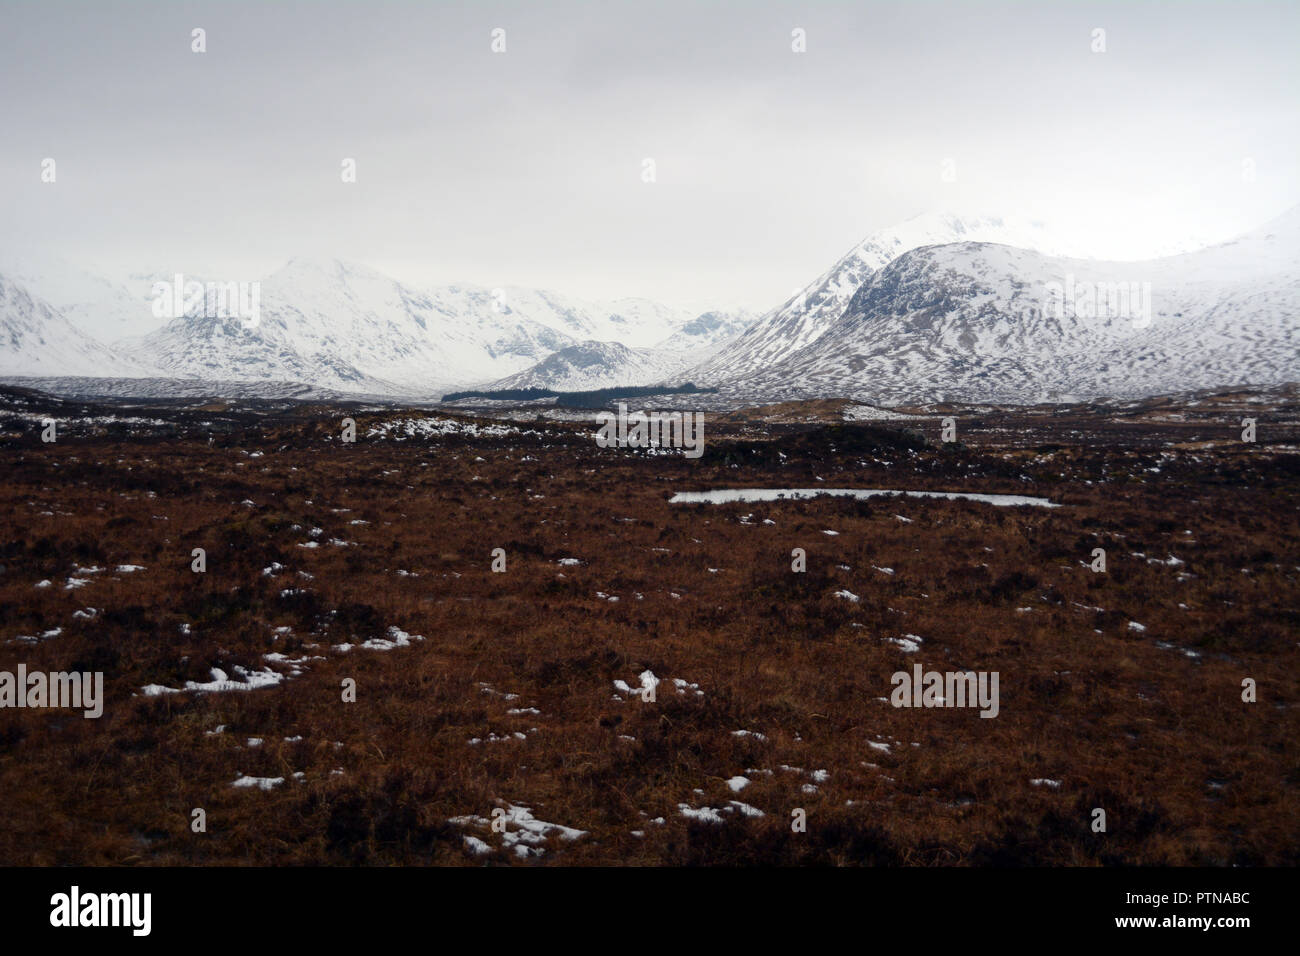 The snow covered mountains of the Black Mount range amid the boggy moorland of Rannoch Moor, Scottish Highlands, Scotland, United Kingdom. - Stock Image